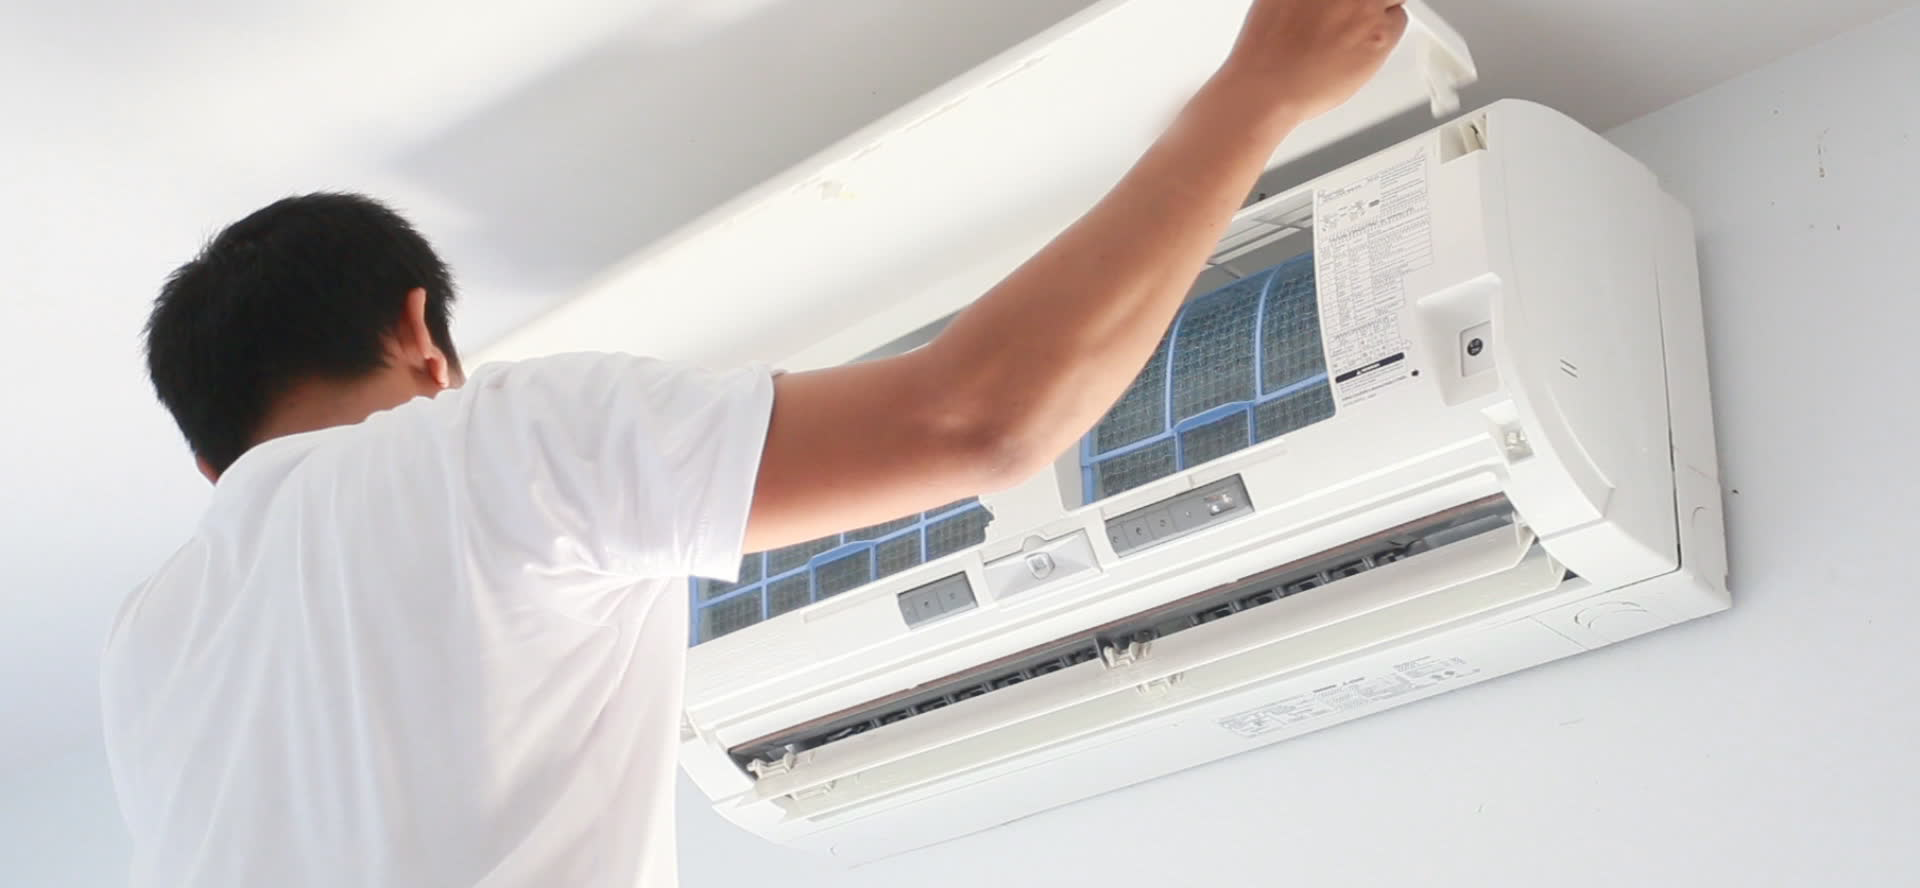 Air Conditioning Repair Service In San Antonio Texas